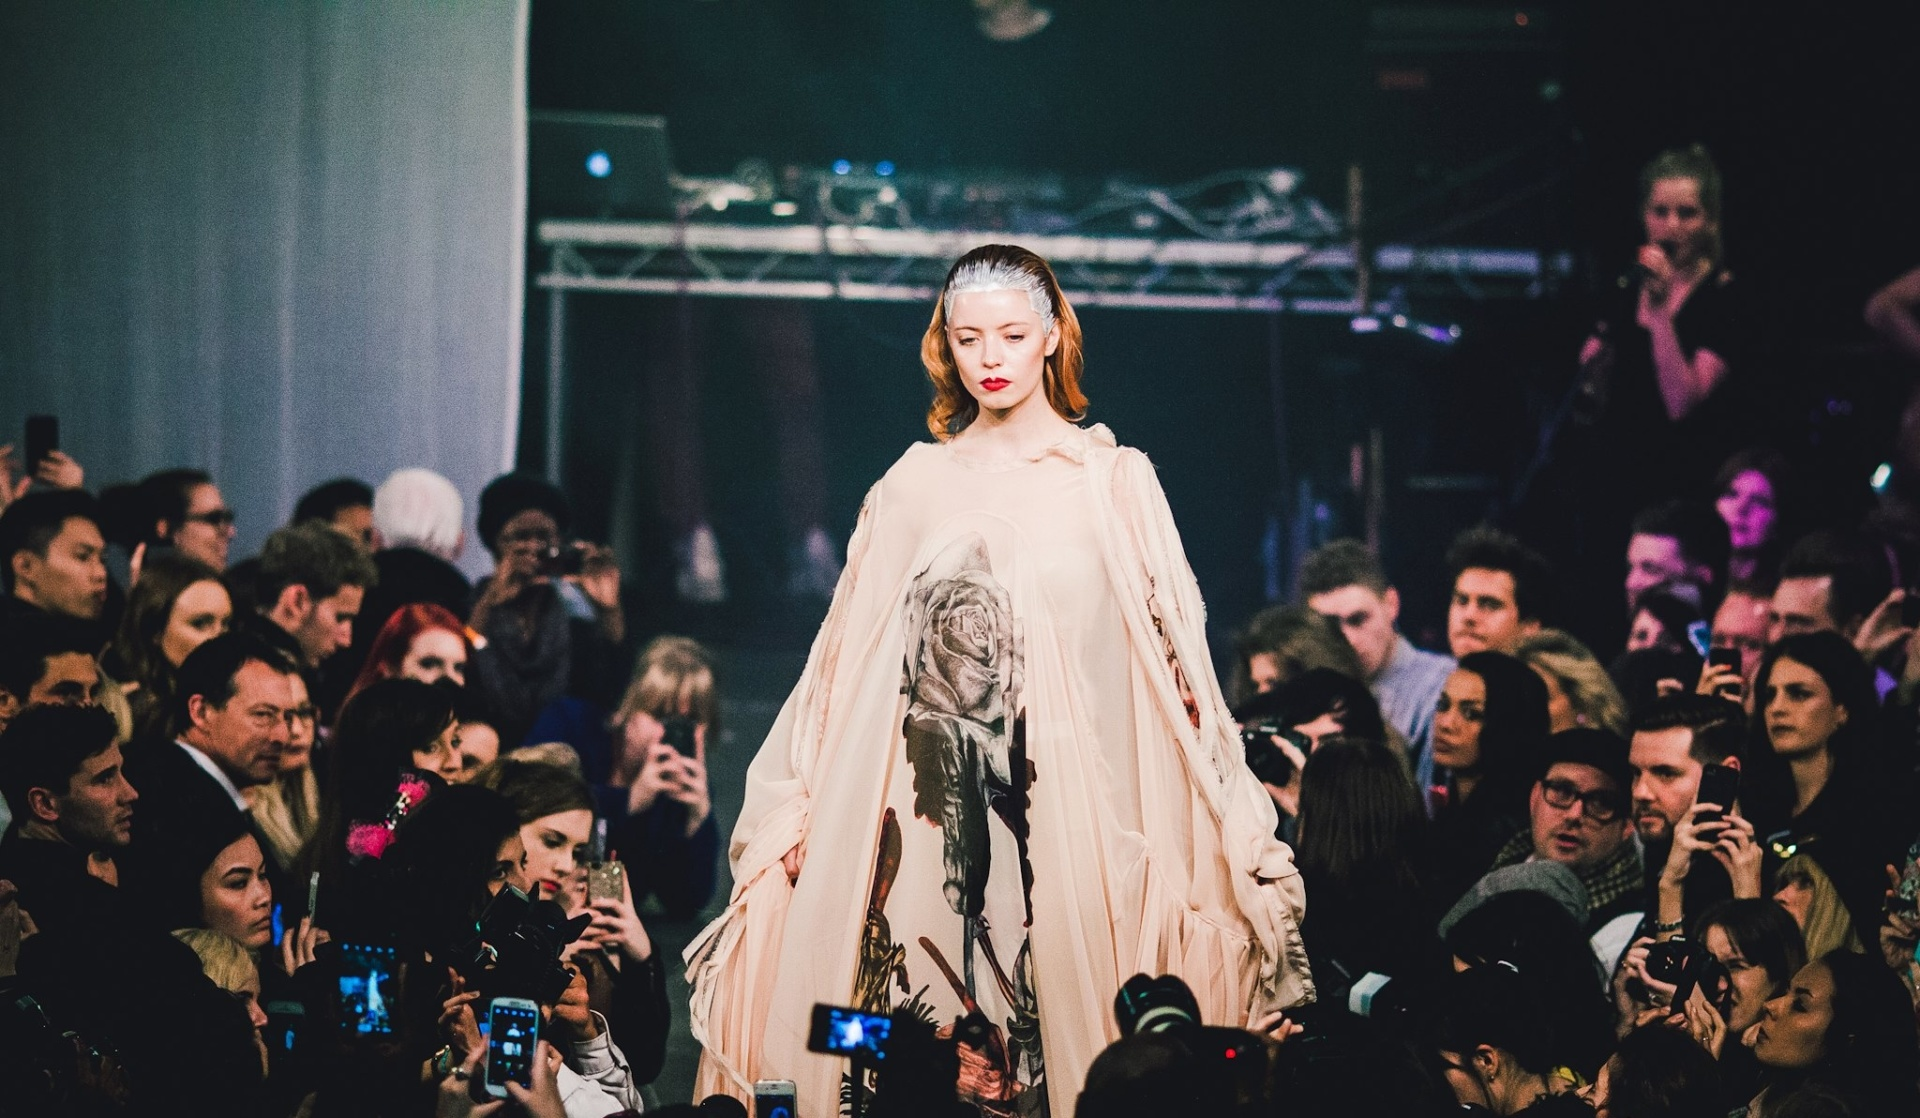 Photograph of the Shoreditch Fashion Show- pictured is a woman in white walking down a catwalk. Graphic design by Barefaced Studios, design agency based in Islington, North London.